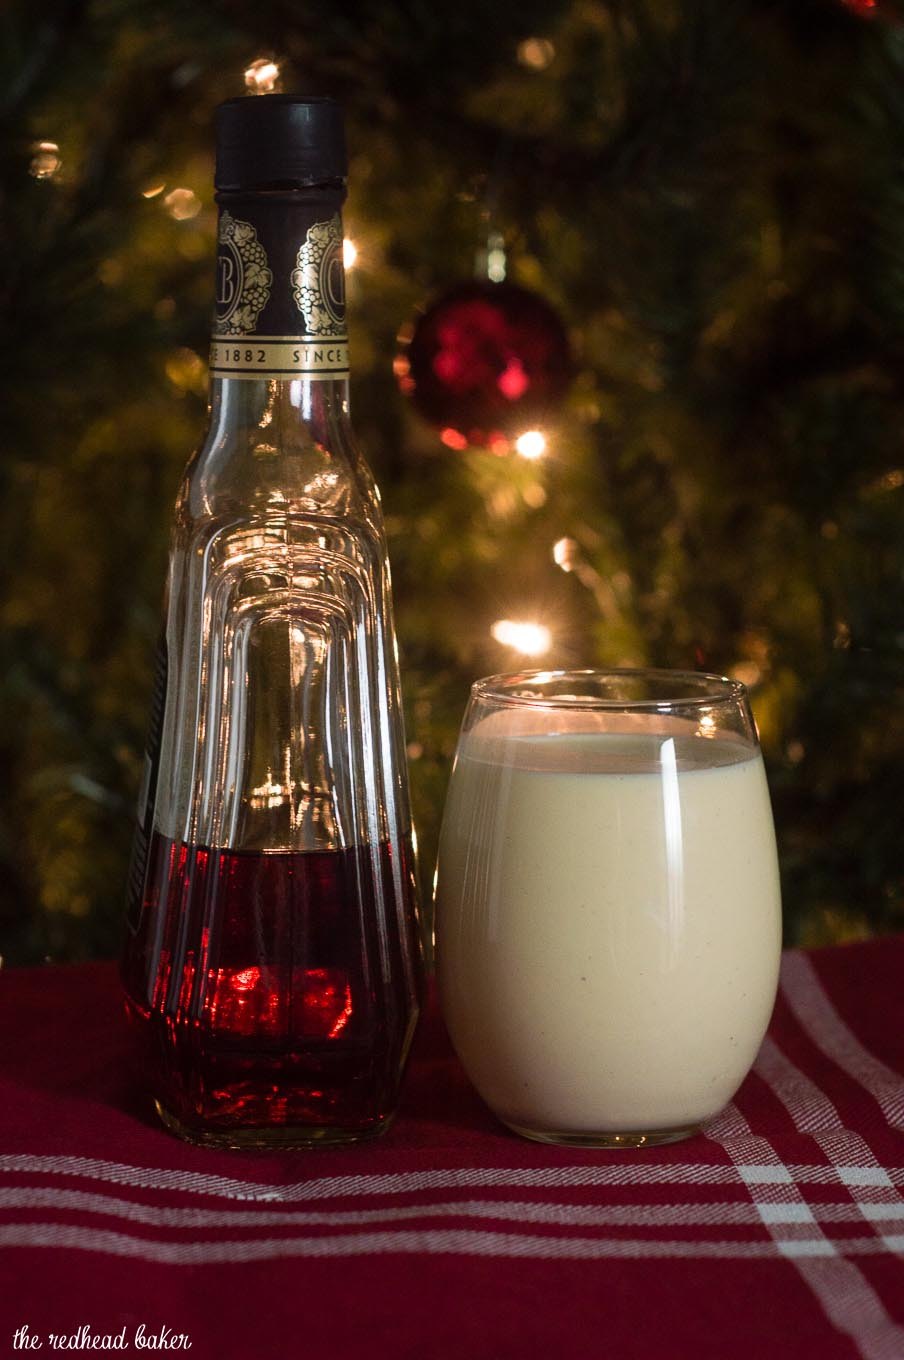 What says Christmas more than homemade eggnog? This traditional recipe uses eggs, cream, sugar and nutmeg, with the optional addition of brandy or other liquor. #SundaySupper